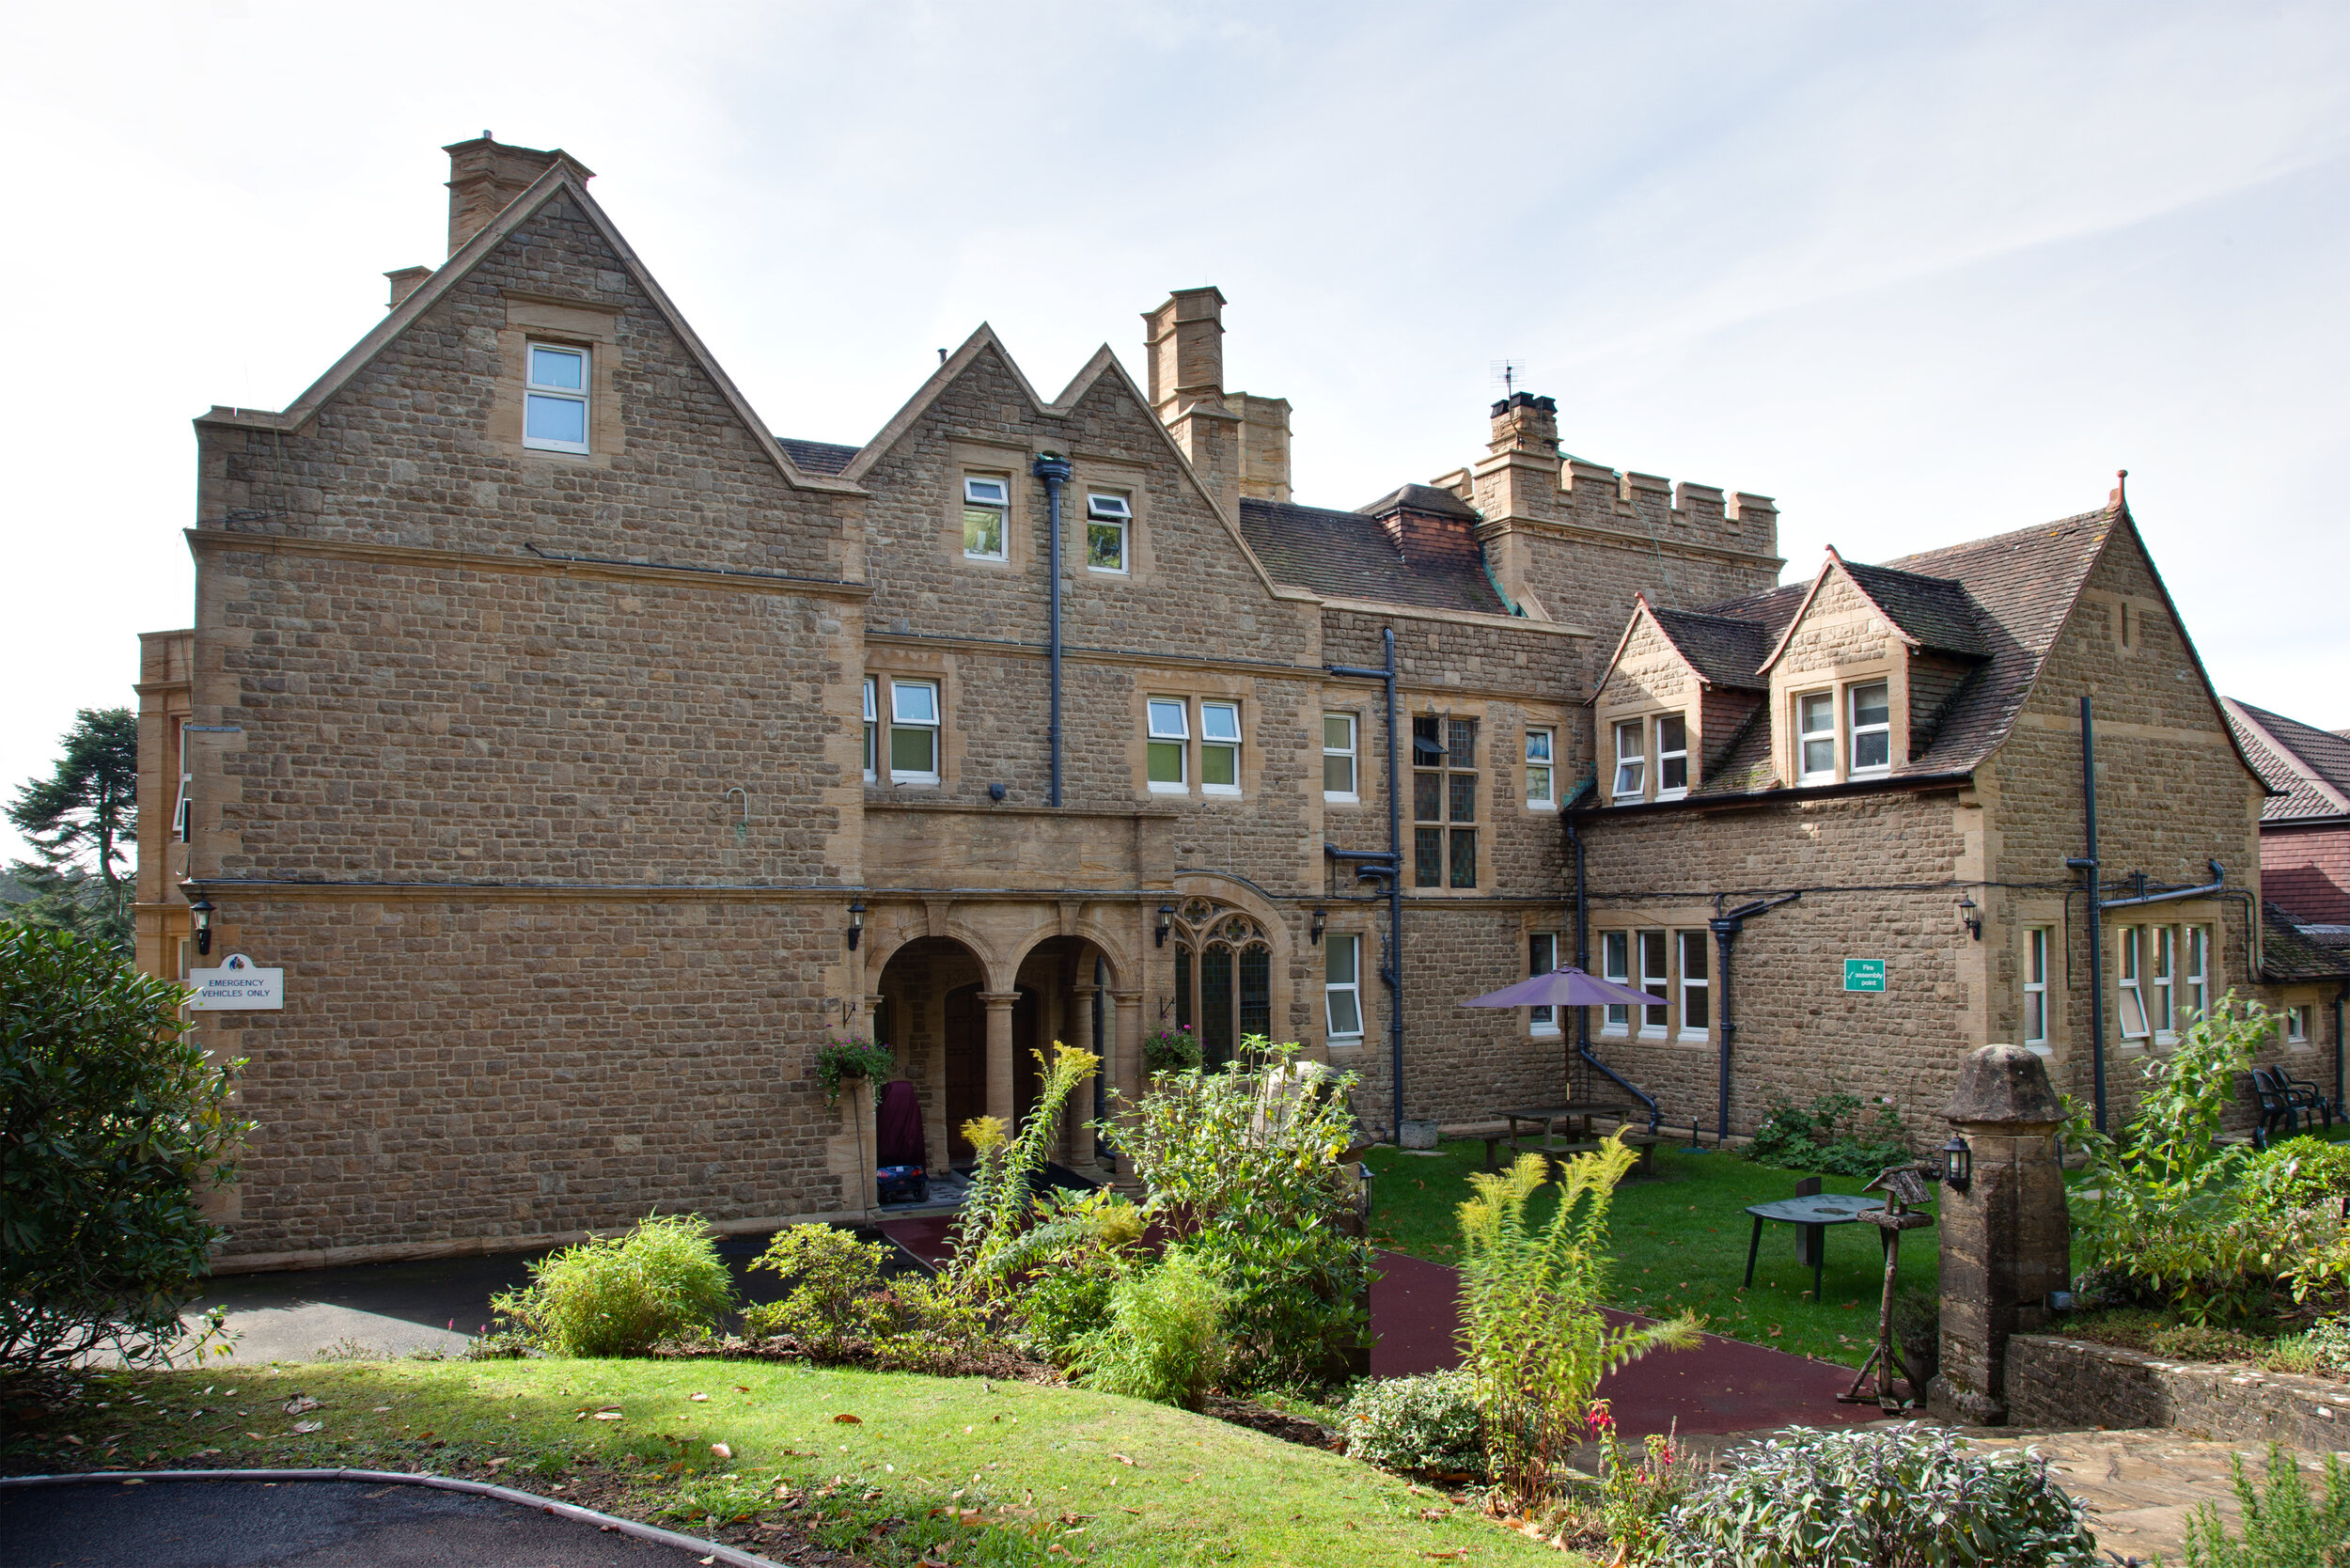 Crest Lodge - CHURT ROAD, HINDHEAD, SURREY, GU26 6PS01428 605 577 | info@crest-lodge.co.uk47 Beds • Enduring Mental Healthcare for young adults